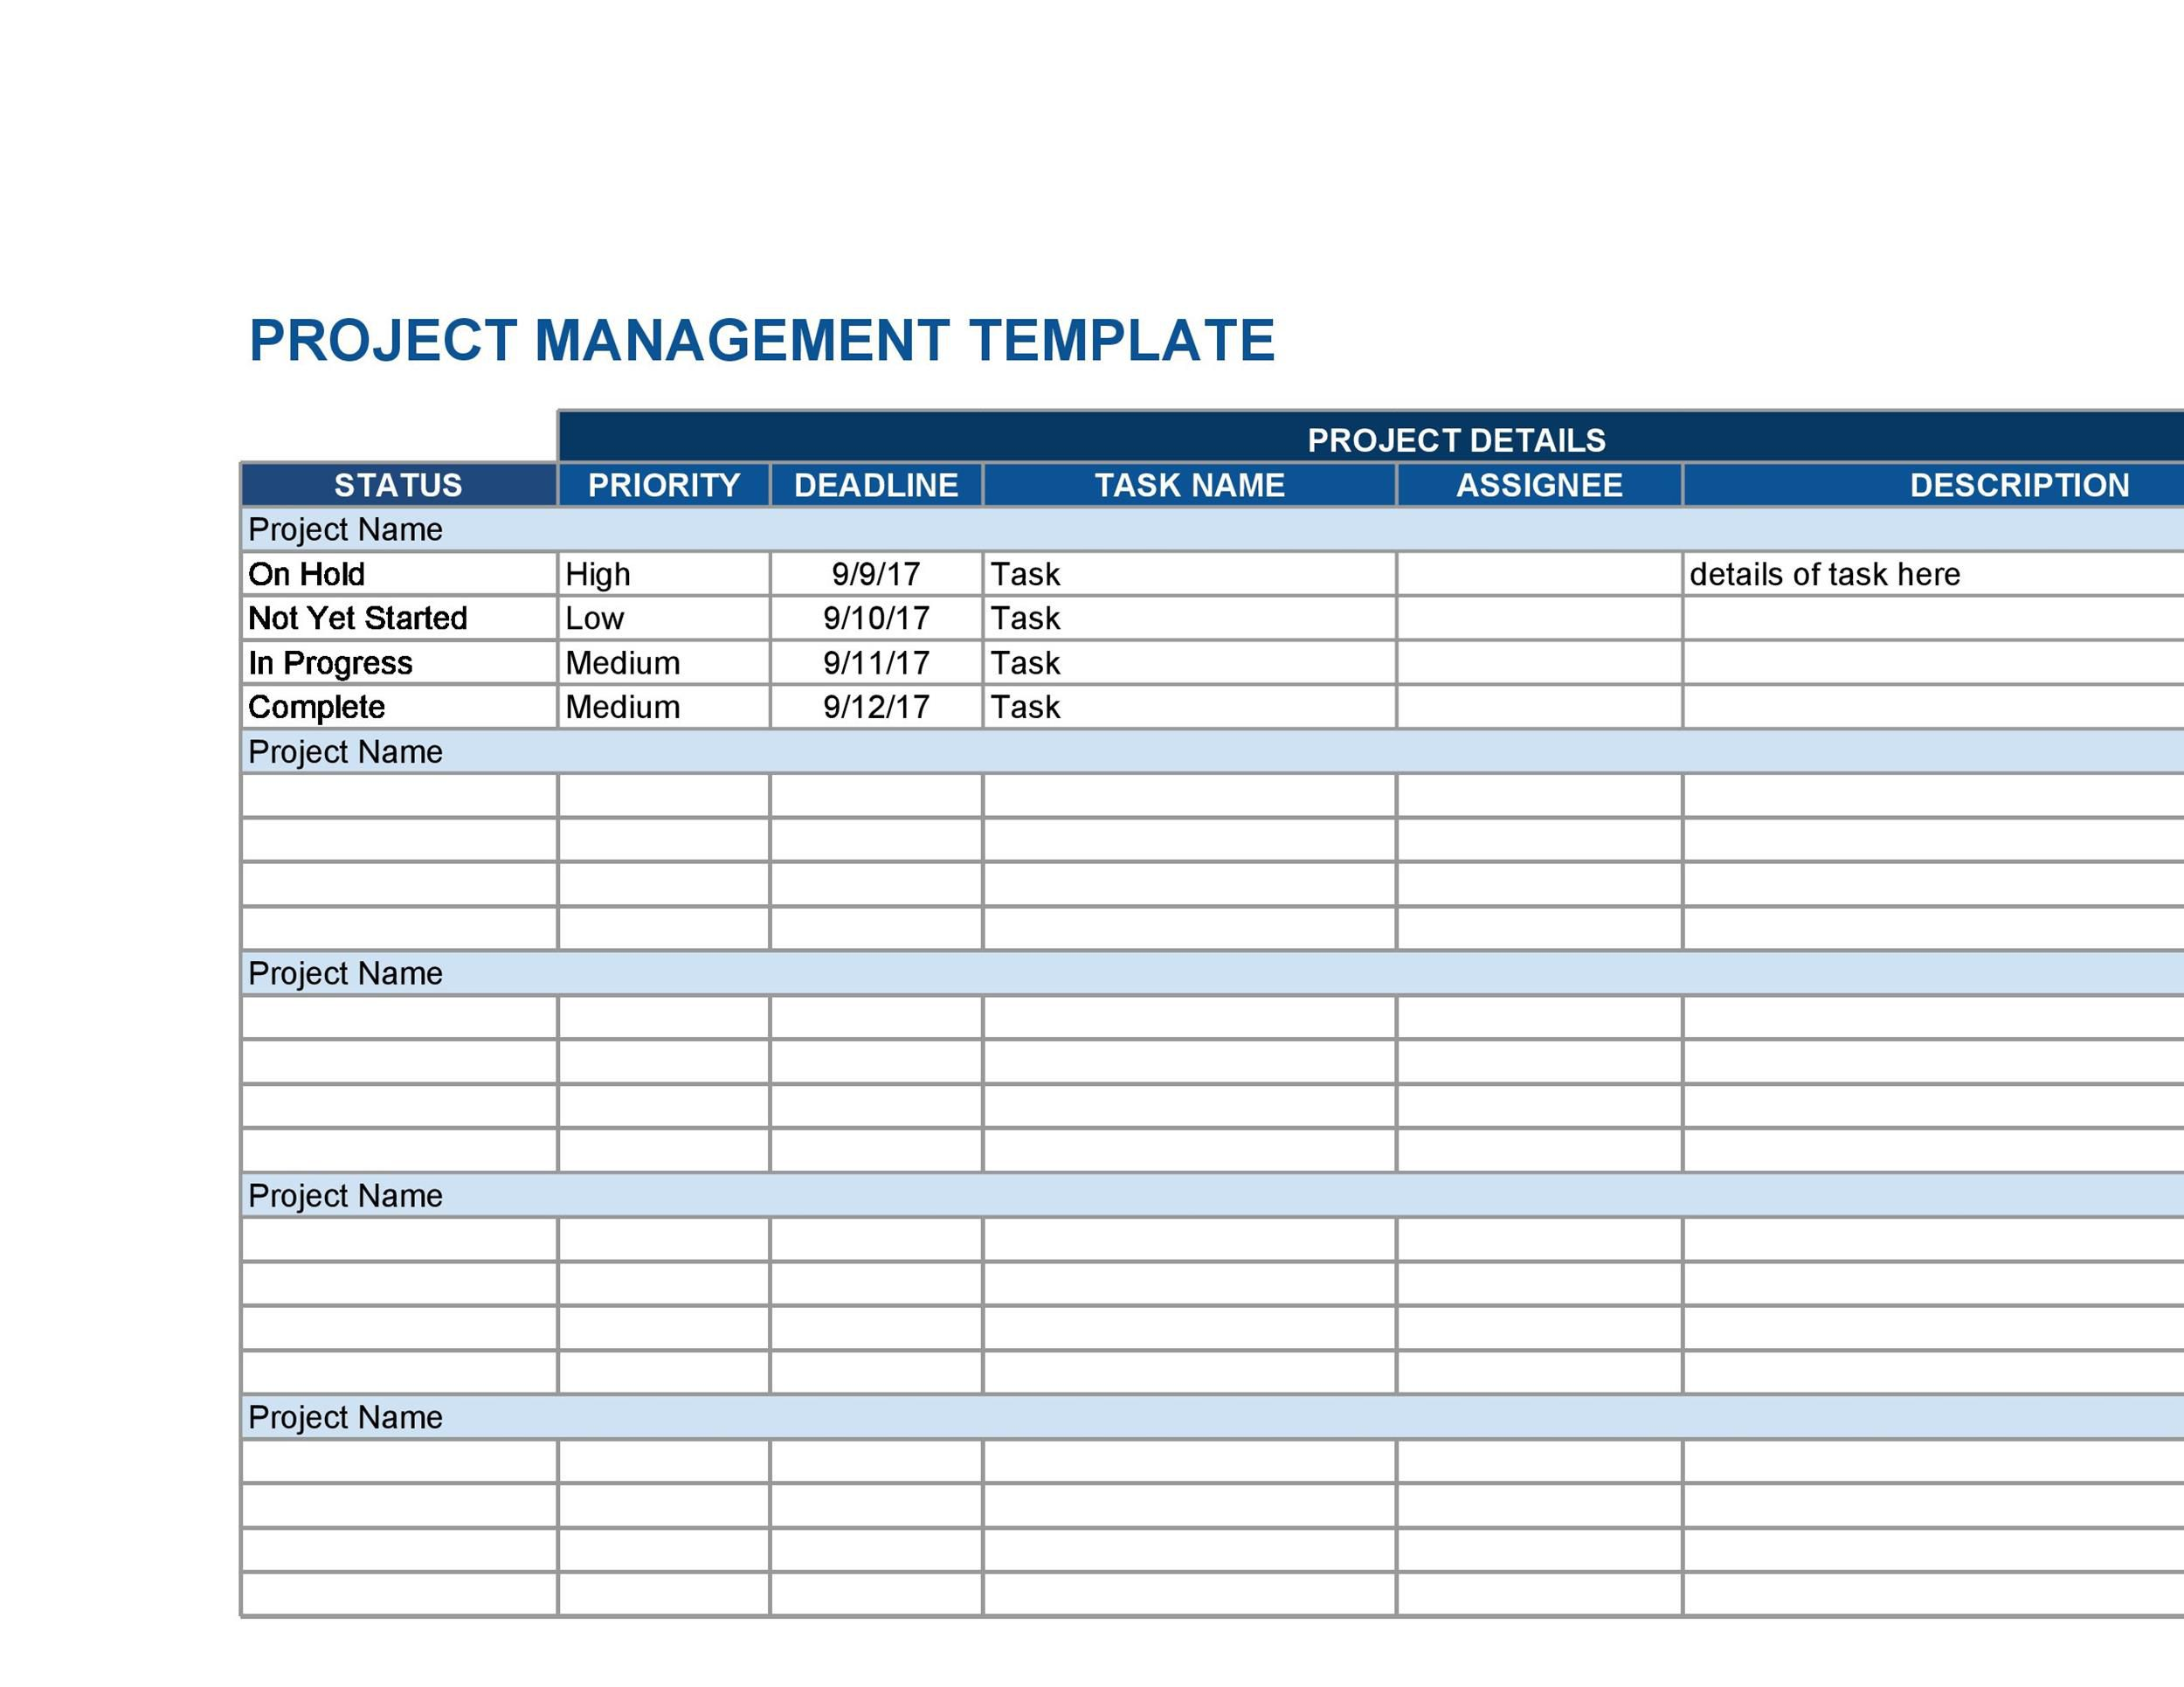 008 Striking Multiple Project Tracking Template Excel Inspiration  Free Download Xl Analysistabs-multiple-project-tracking-template-excel-2003-versionFull